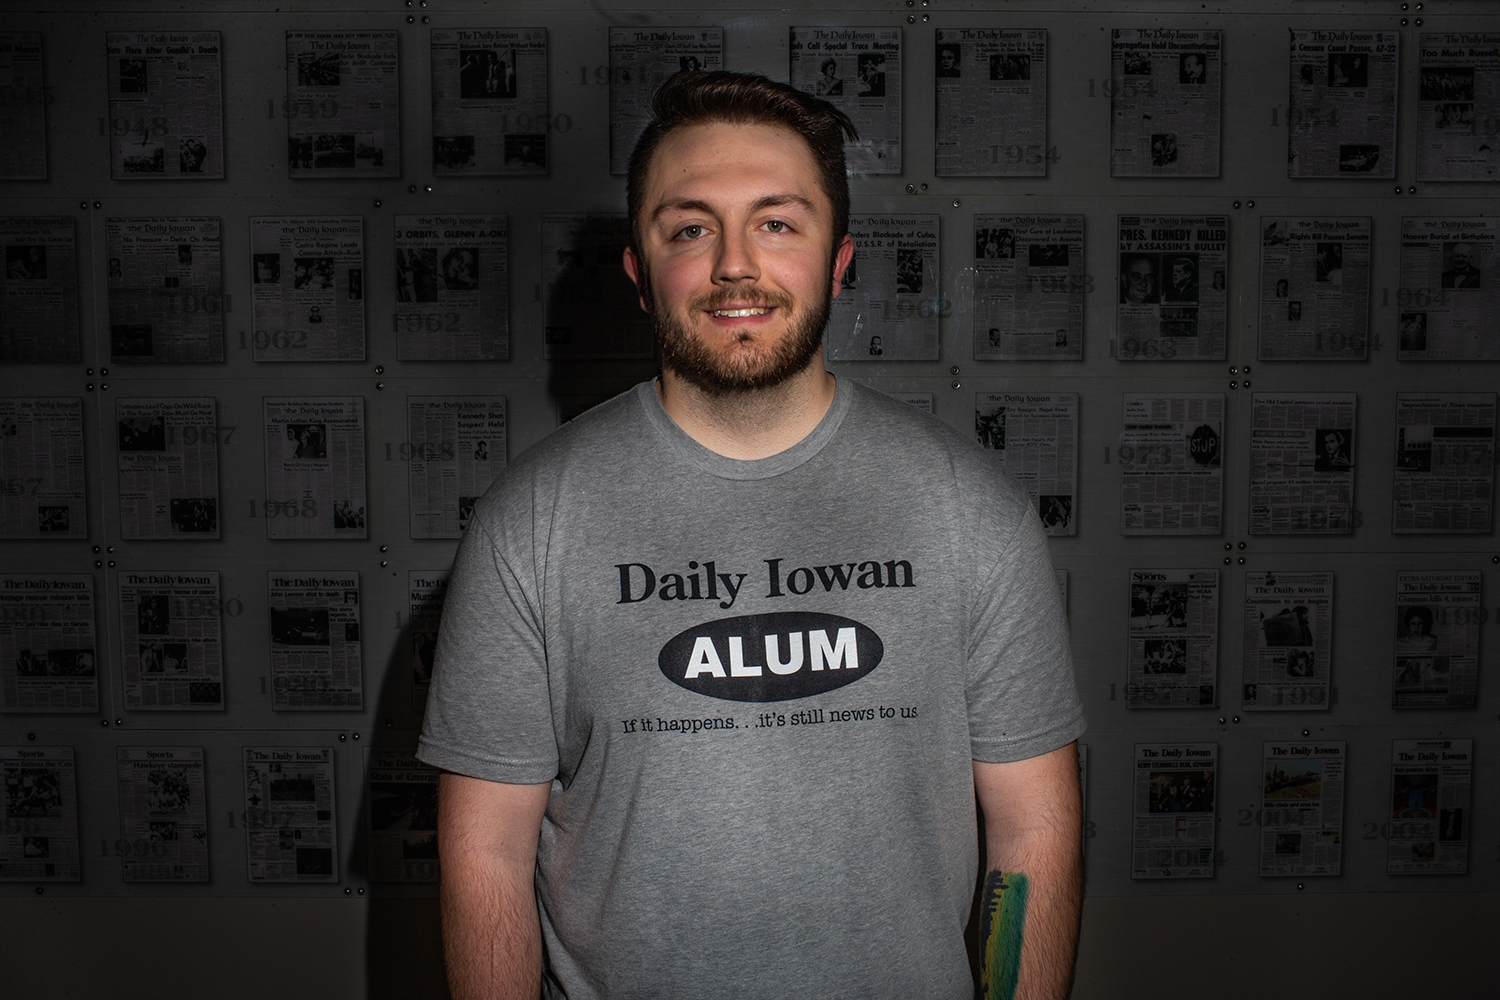 The Daily Iowan editor-in-chief Gage Miskimen poses for a portrait on Thursday, May 9, 2019. (Shivansh Ahuja/The Daily Iowan)